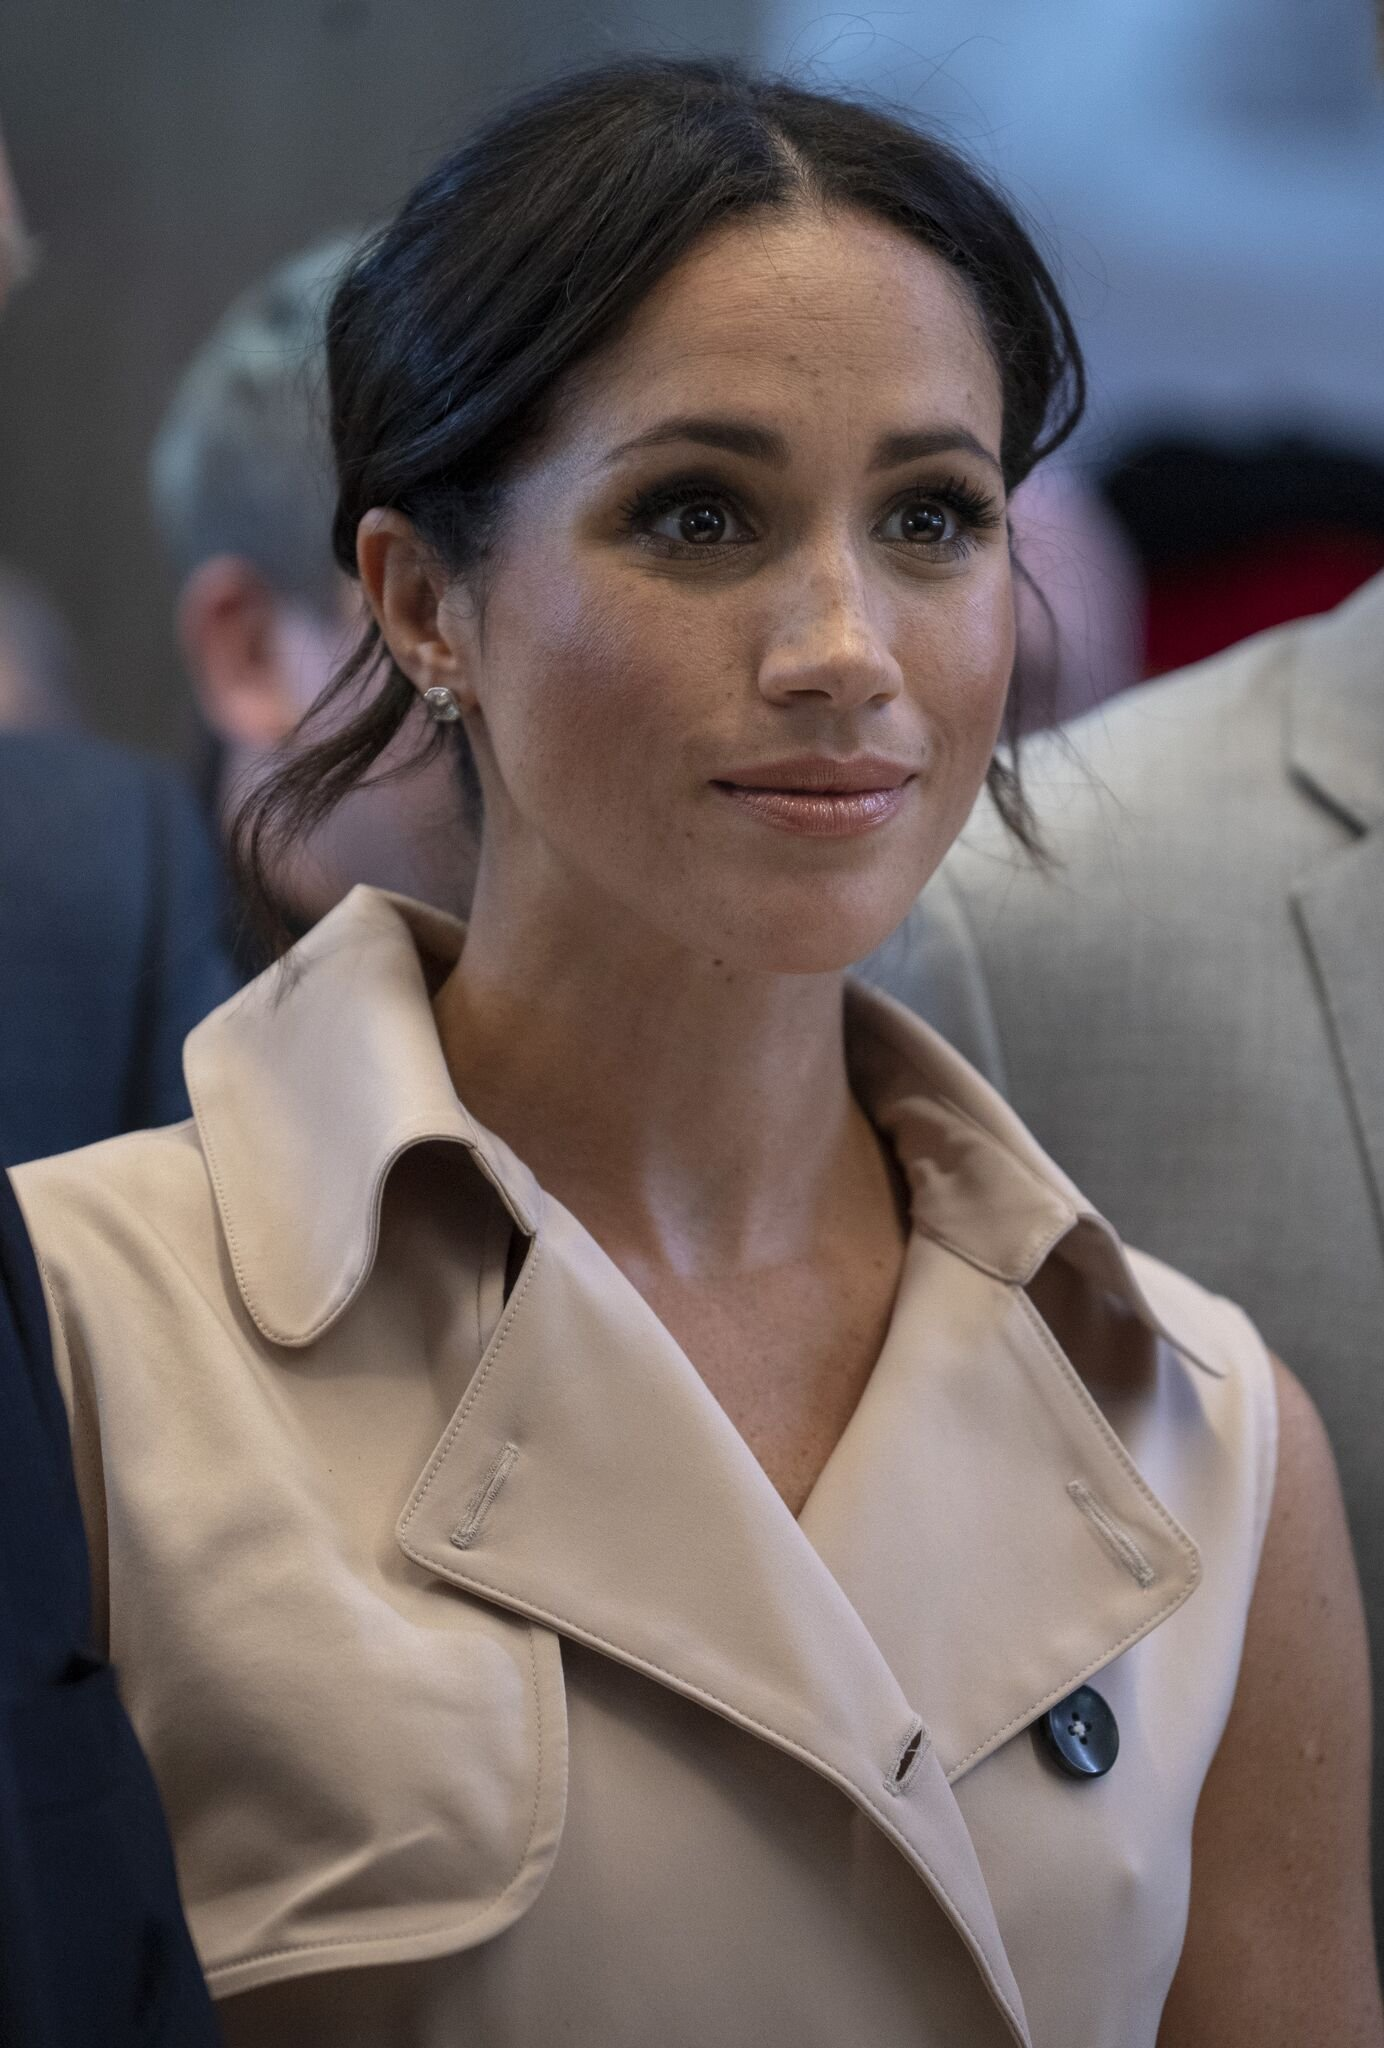 Meghan, Duchess of Sussex visits the Nelson Mandela Centenary Exhibition at Southbank Centre's Queen Elizabeth Hall on July 17, 2018 | Photo: Getty Images